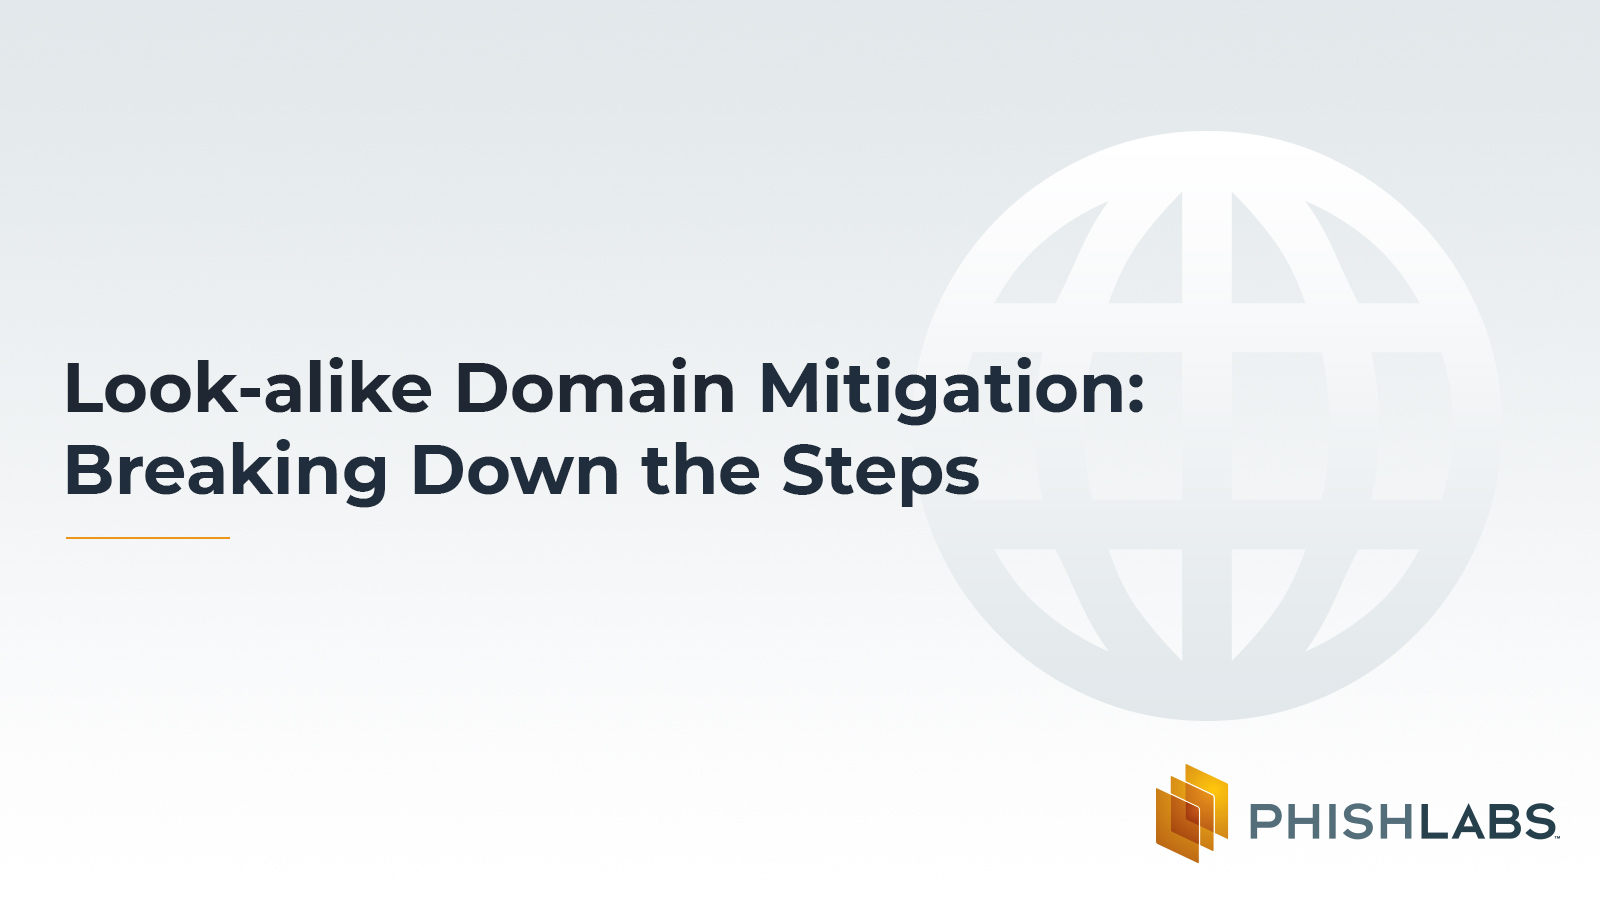 Look-alike Domain Mitigation: Breaking Down the Steps